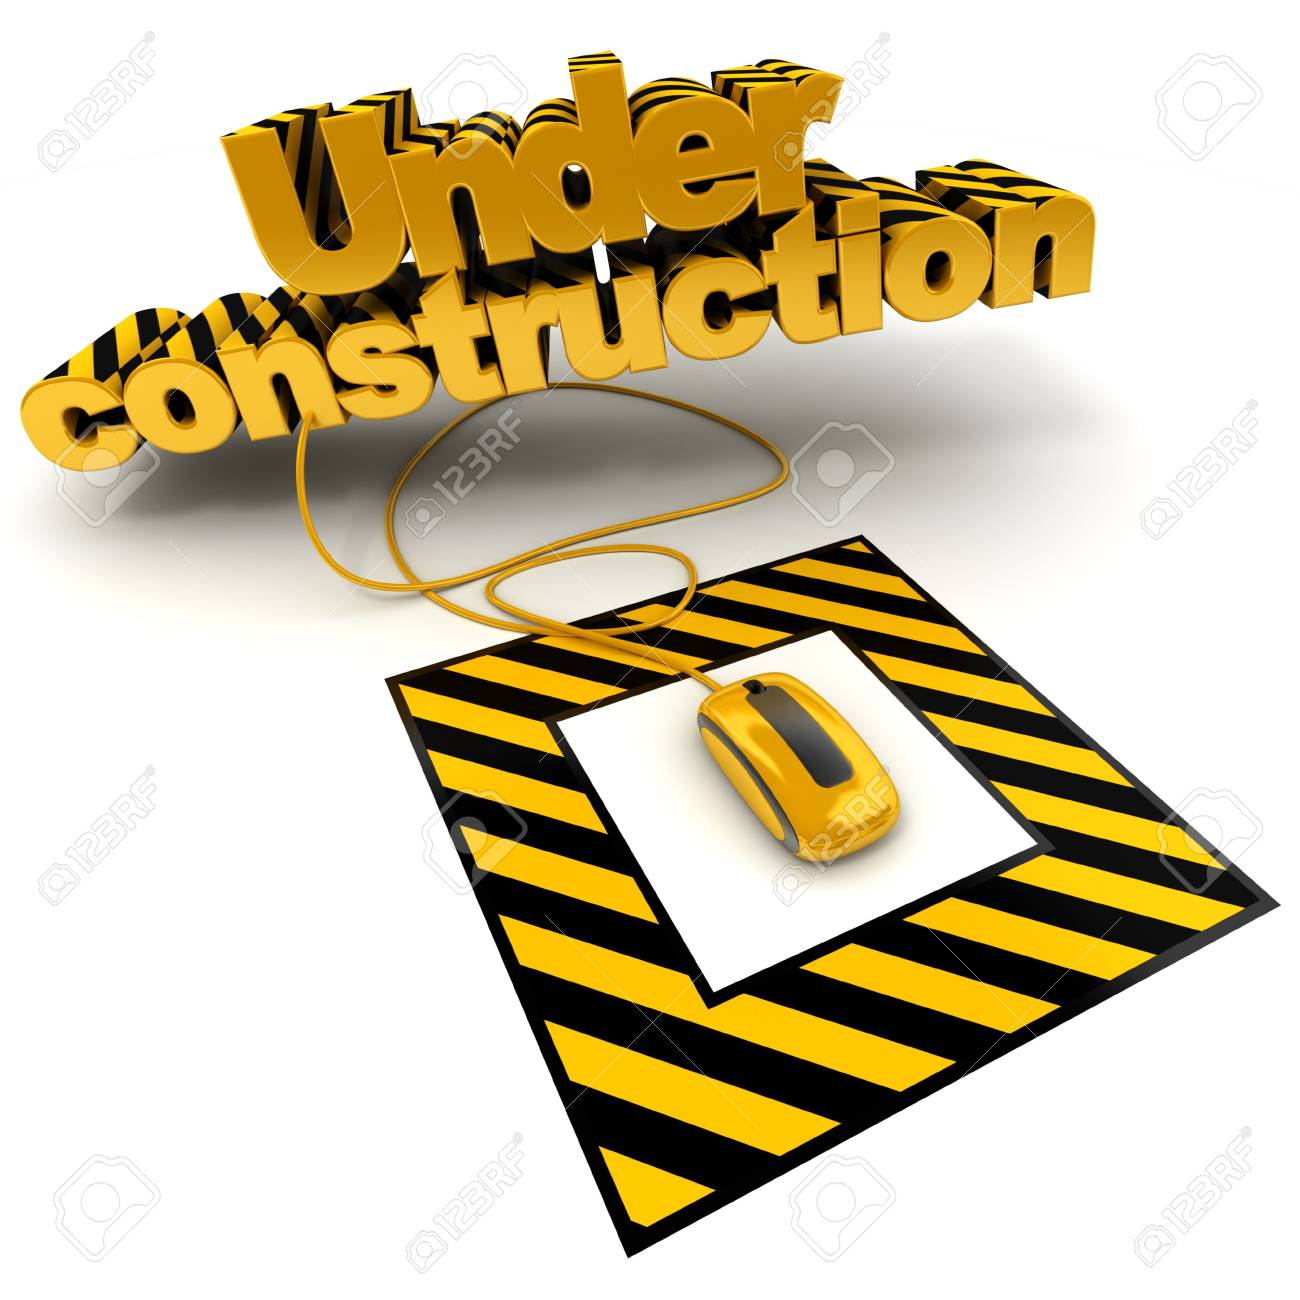 3D illustration of the word under construction connected to a computer mouse with black and yellow stripes Stock Photo - 5719666